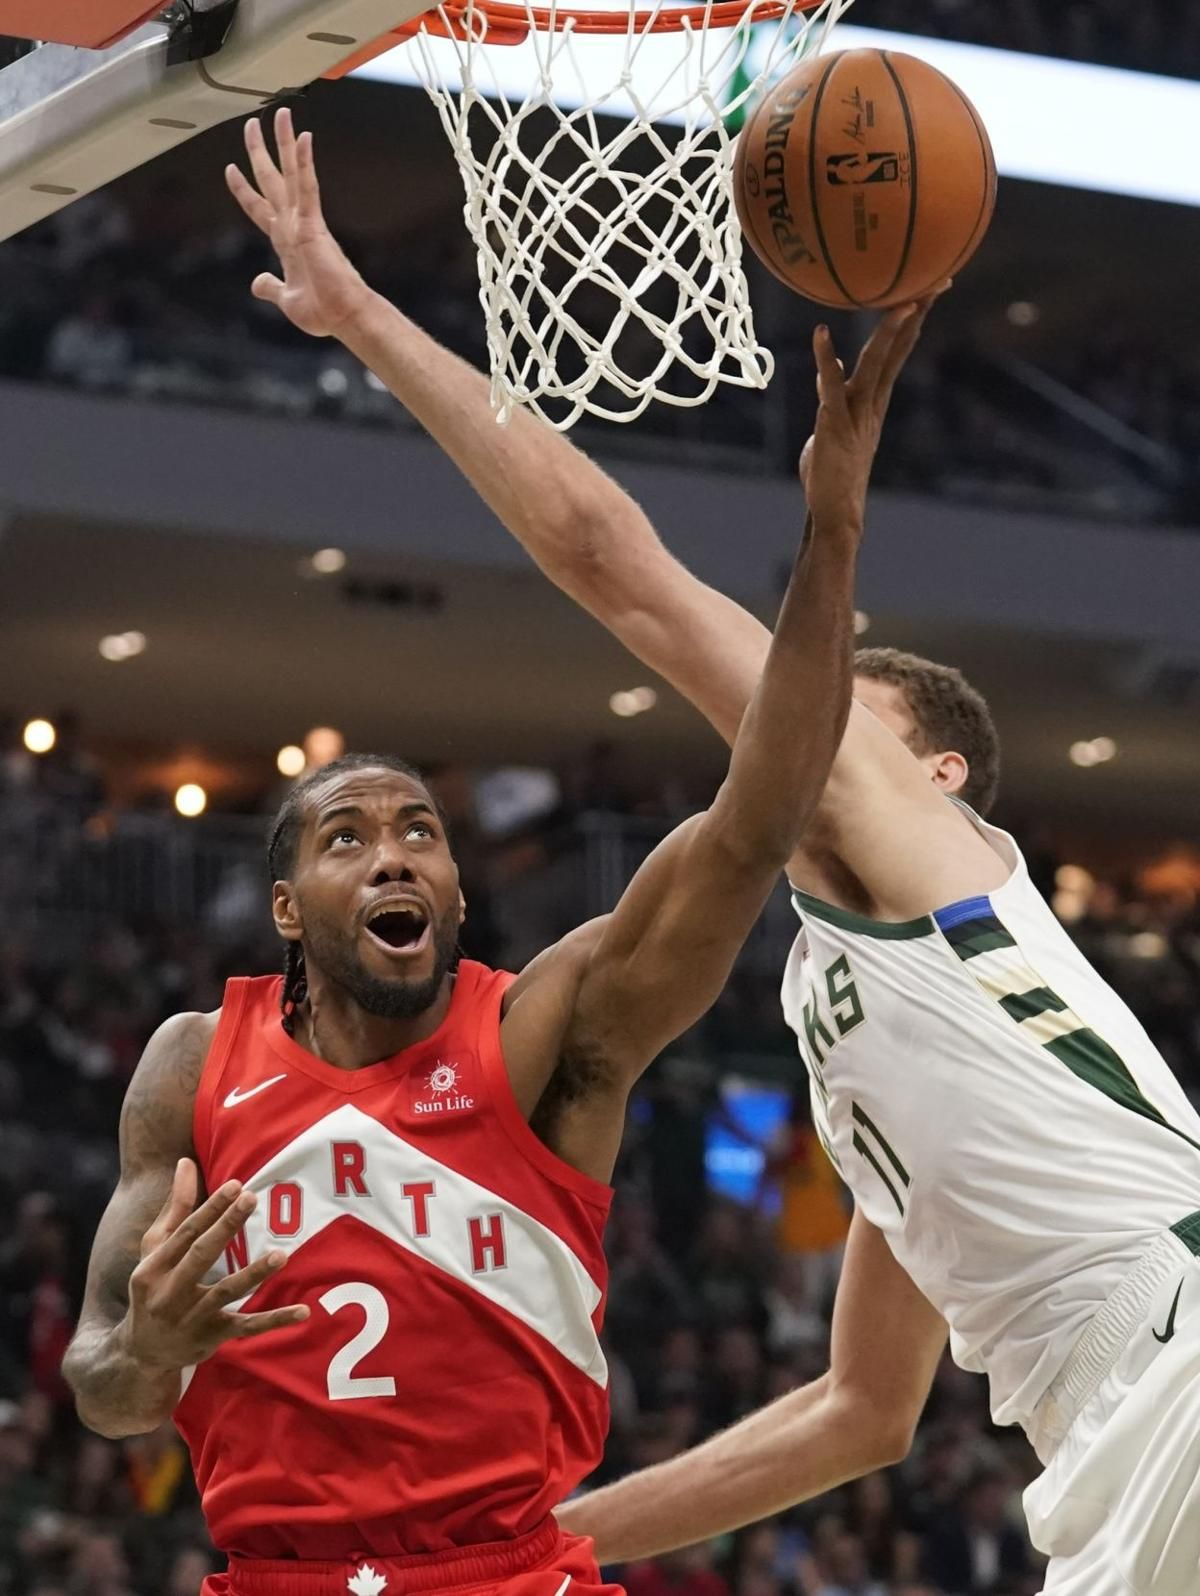 Afseth Leonard Leads Raptors Into Nba Finals Sports is the